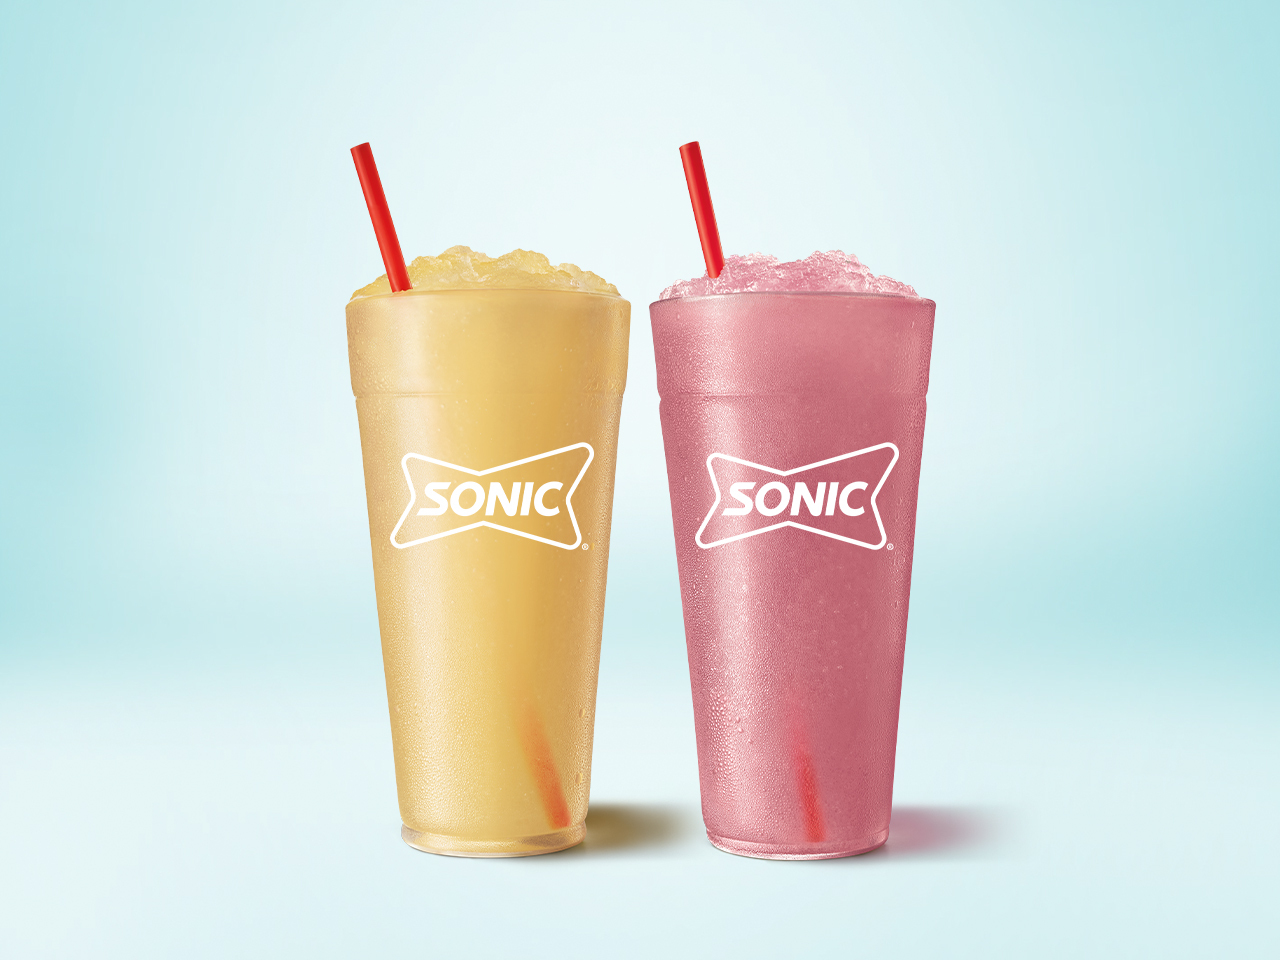 SONIC Kick-Starts Summer with New Red Bull Slush | Business Wire